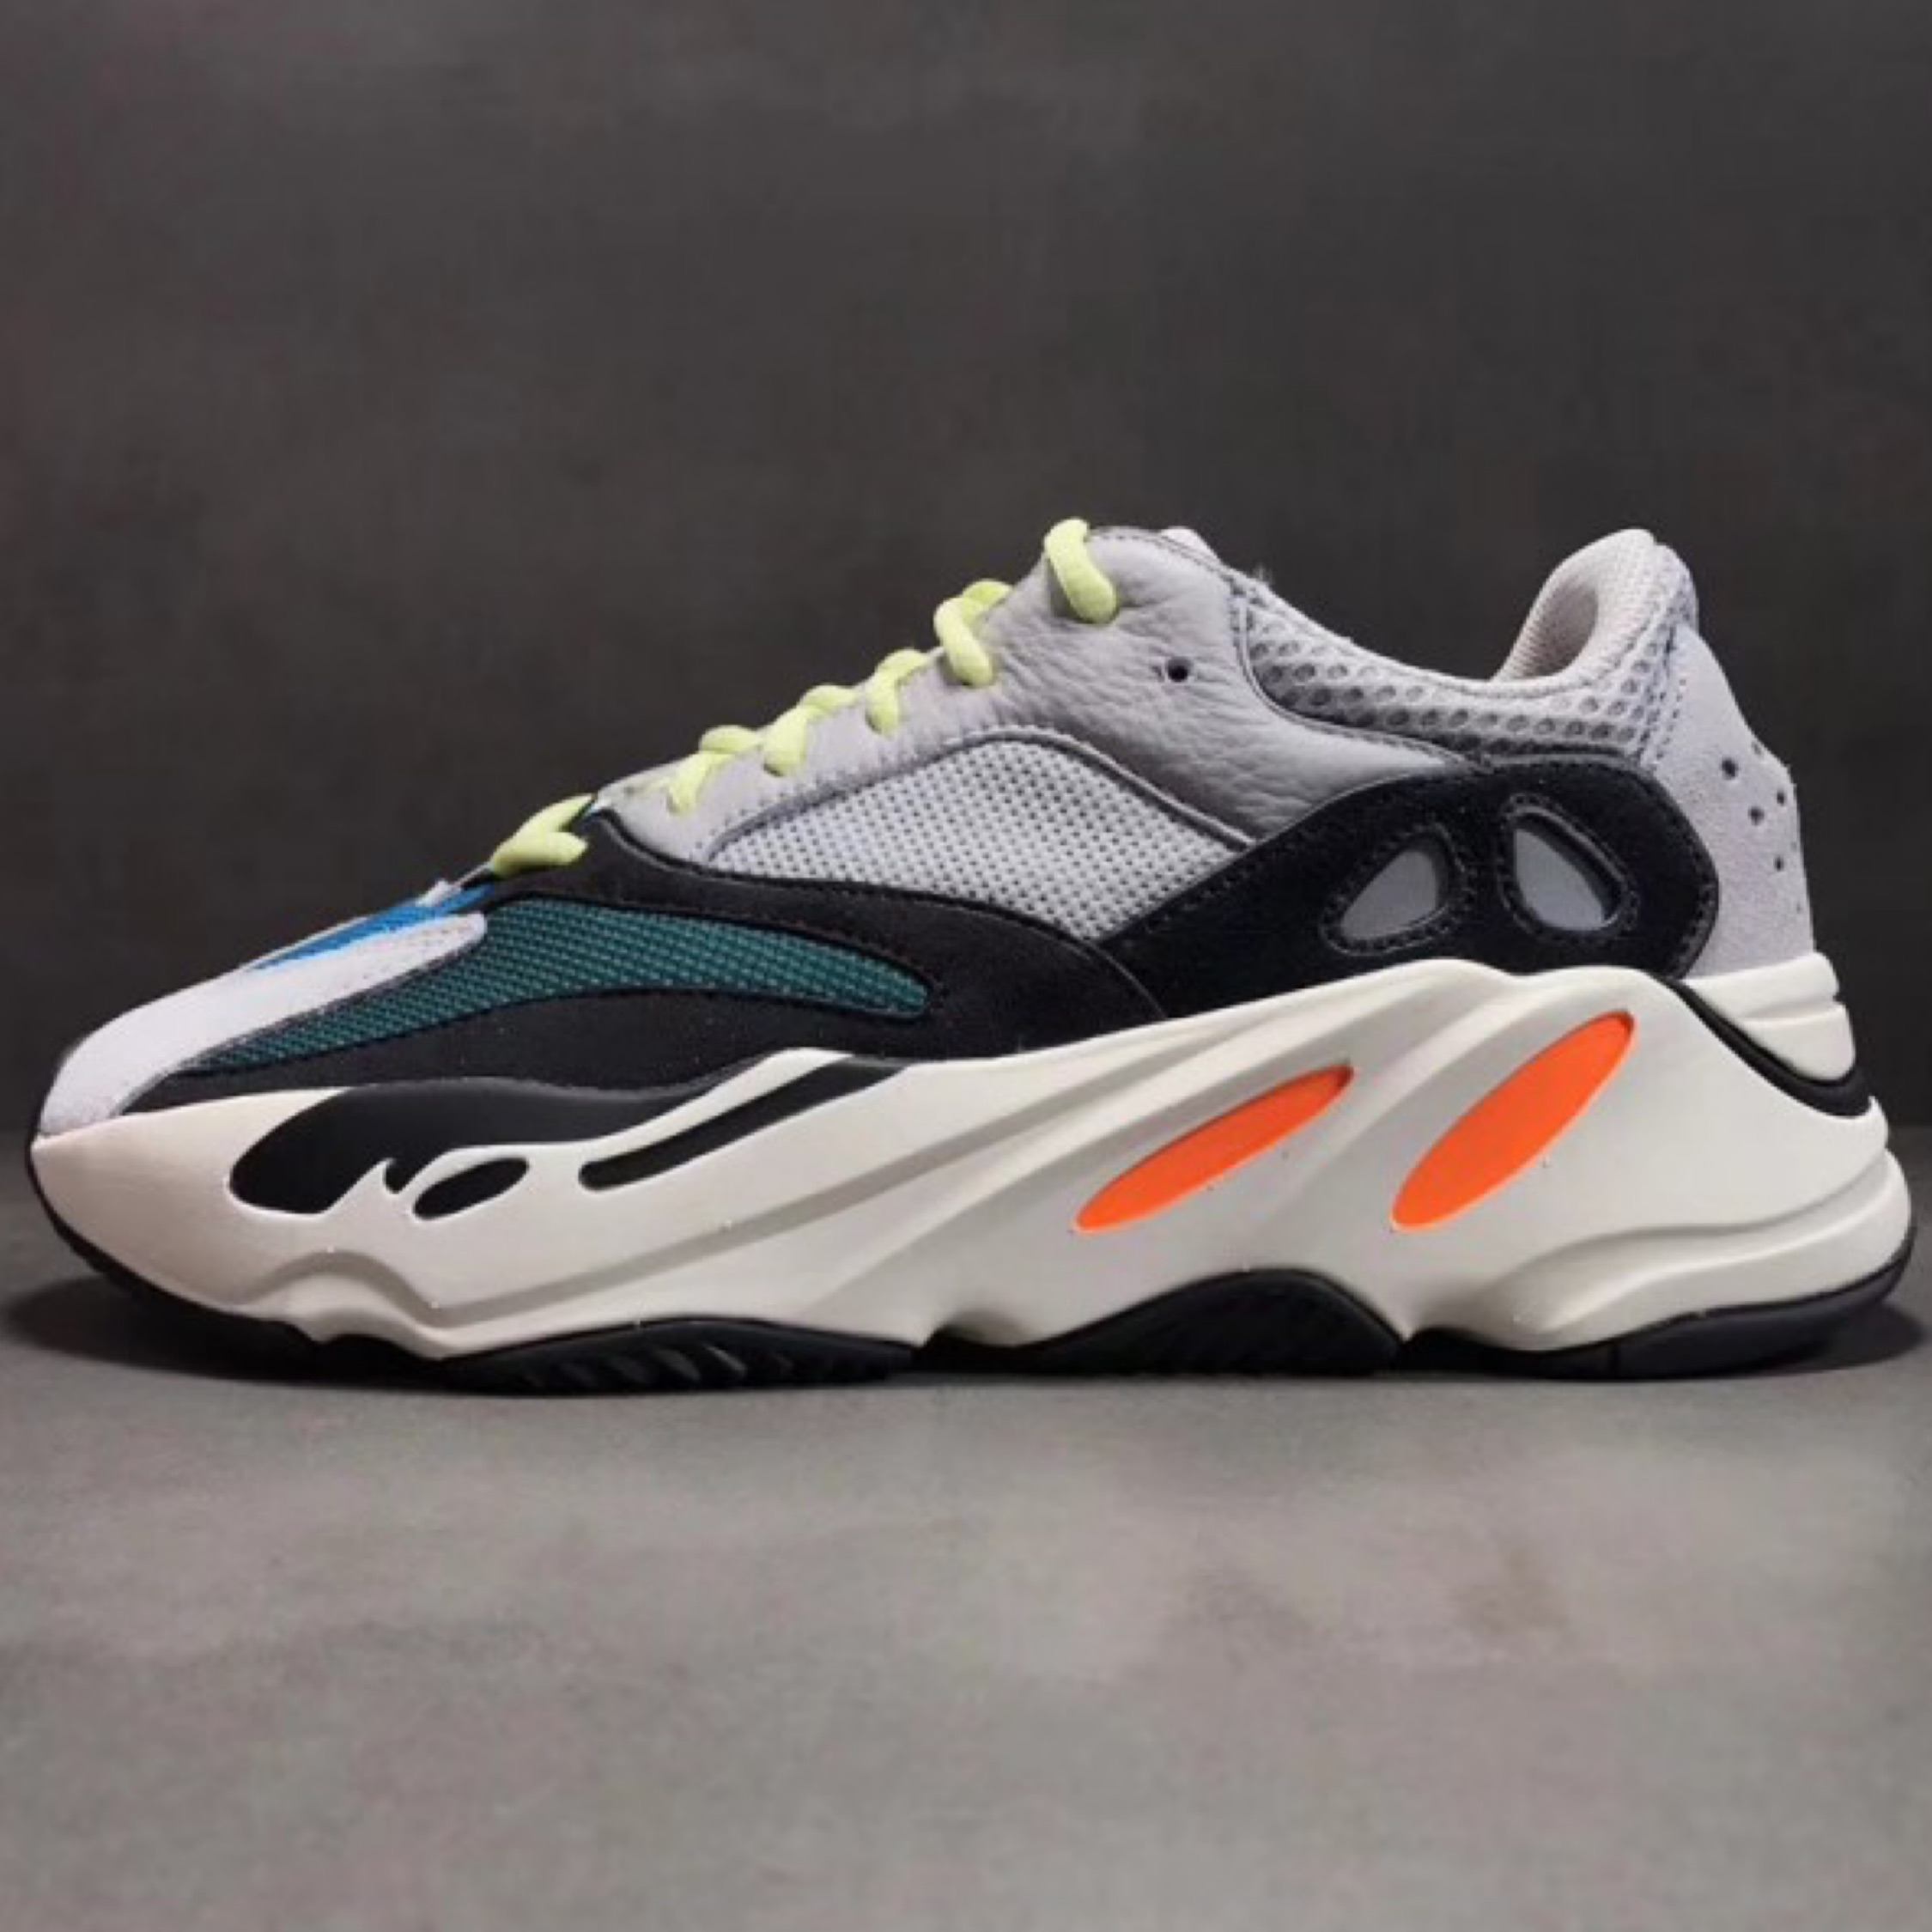 separation shoes 477d4 a36b0 Adidas Yeezy Boost Wave Runner 700 Size 8 Ds